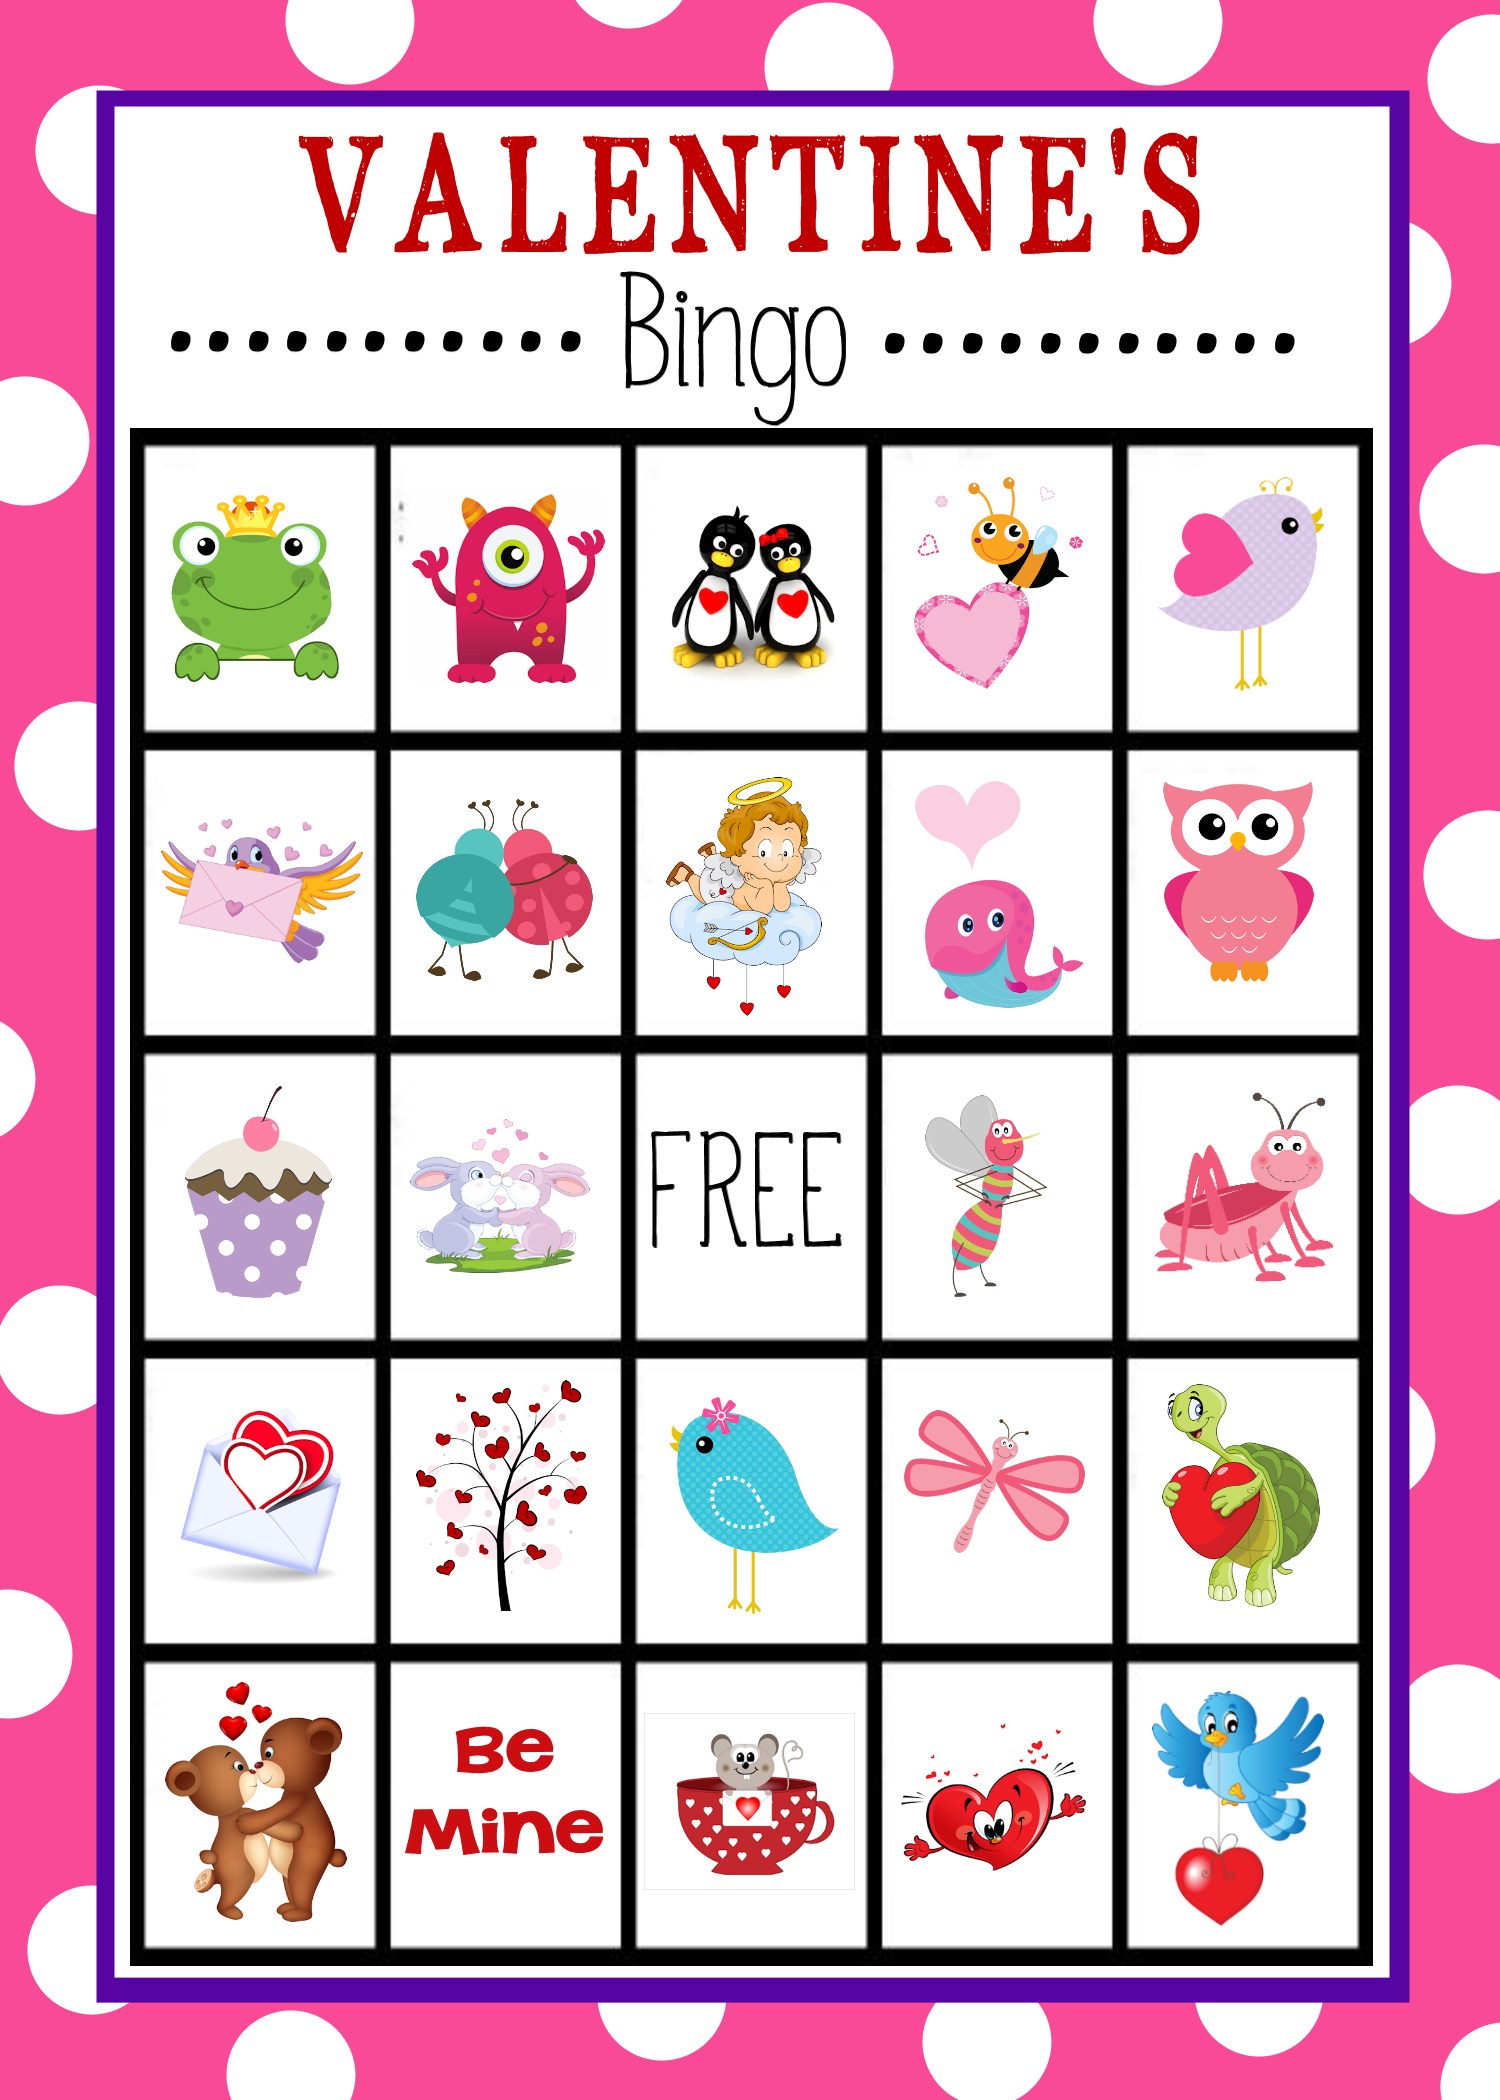 Valentine's Bingo Game To Print & Play | Valentine's Day Activities - Valentines Bingo Cards Free Printable